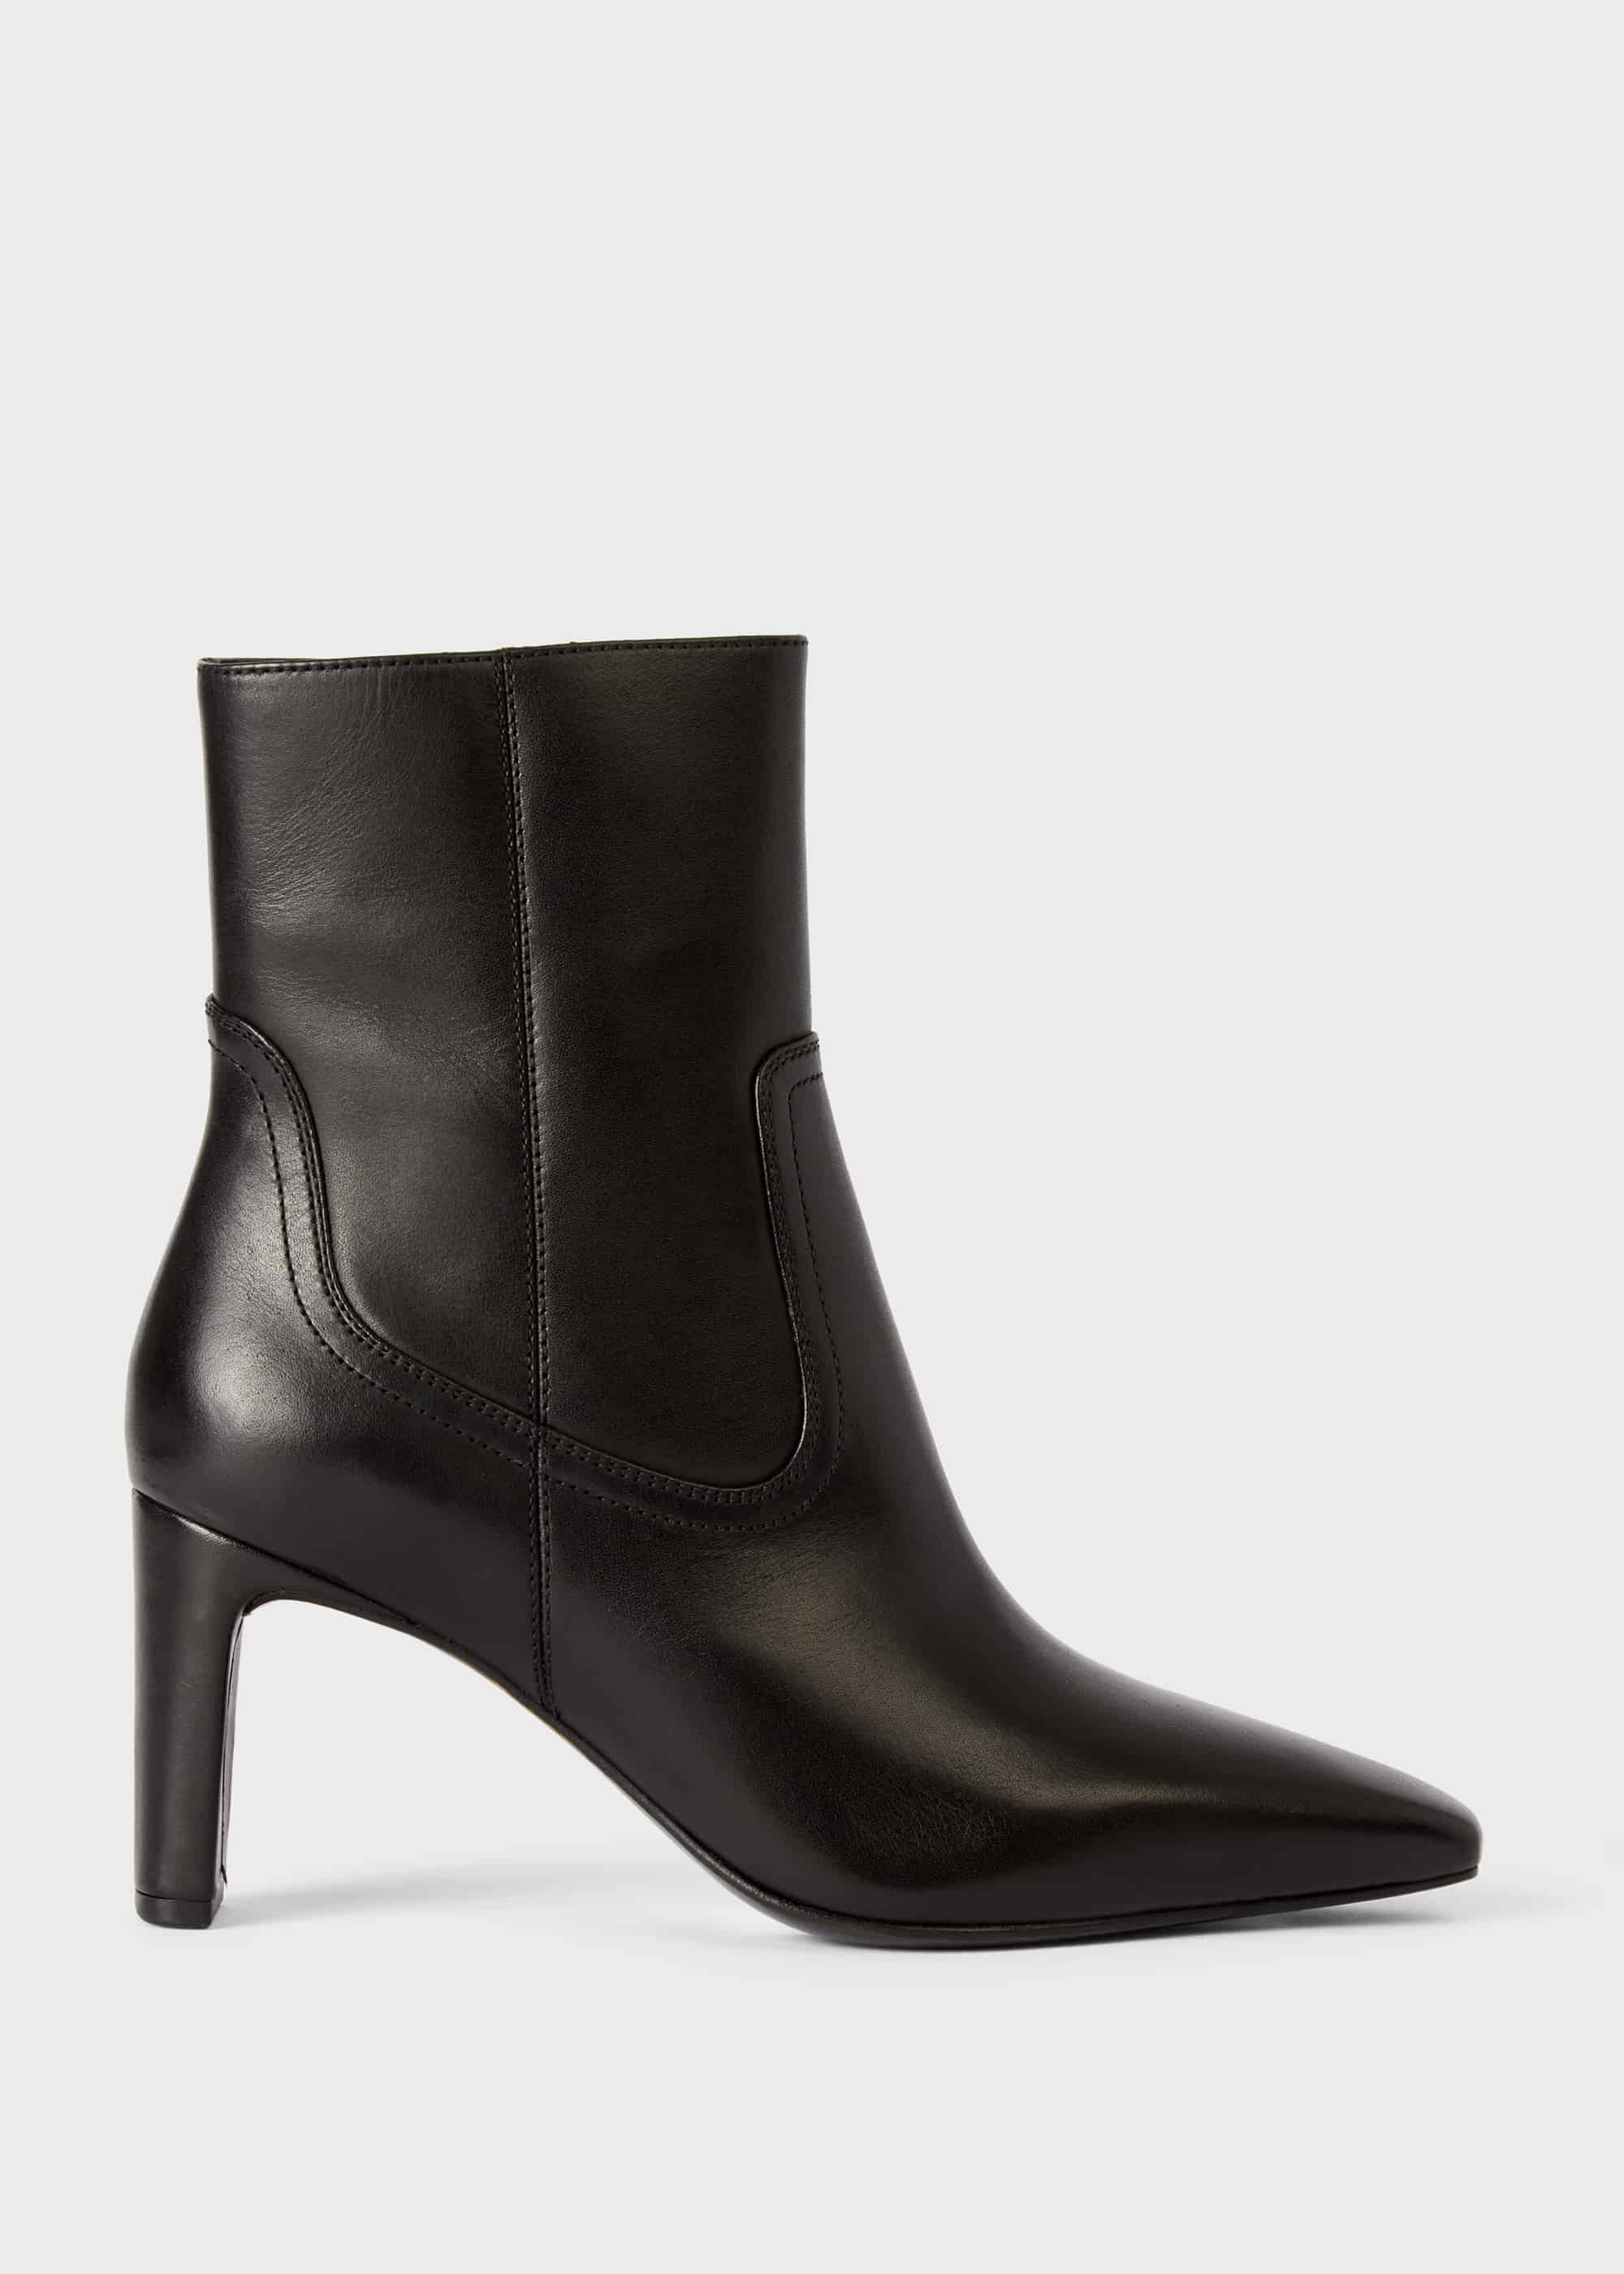 Fiona Leather Stiletto Ankle Boots | Hobbs